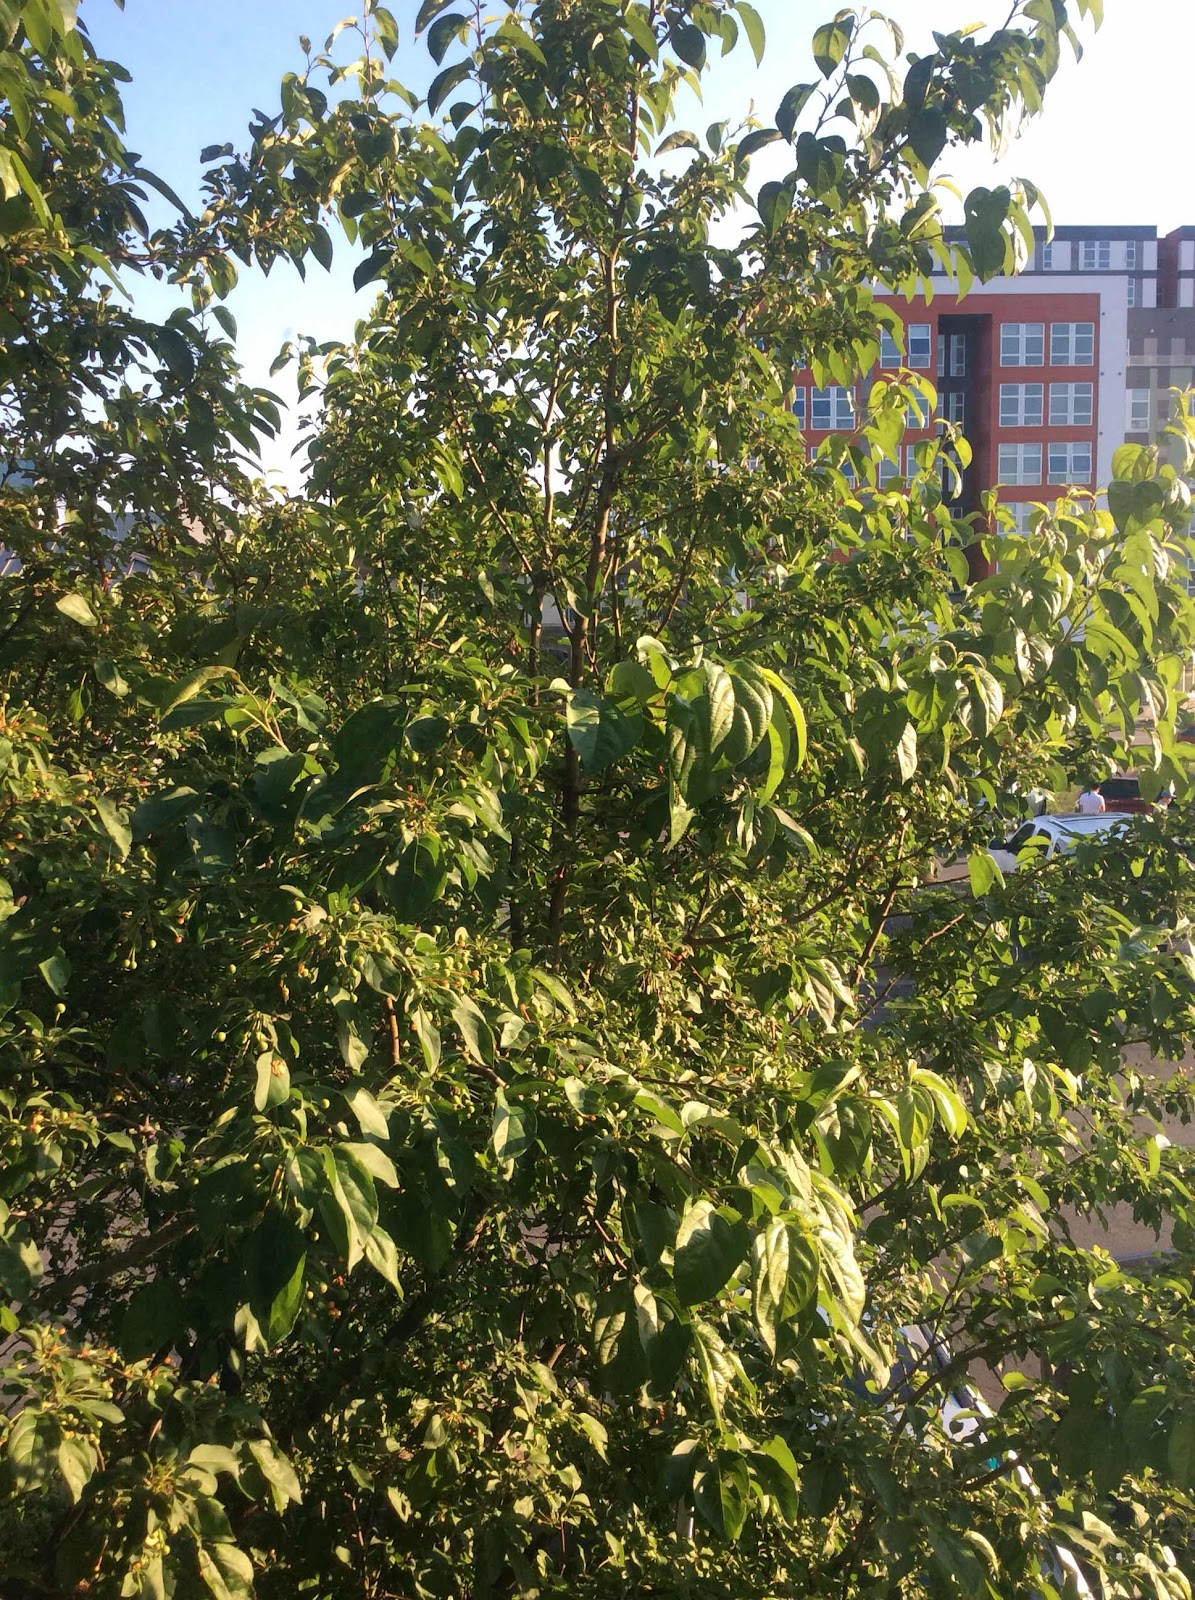 Some kind of apple tree out our window